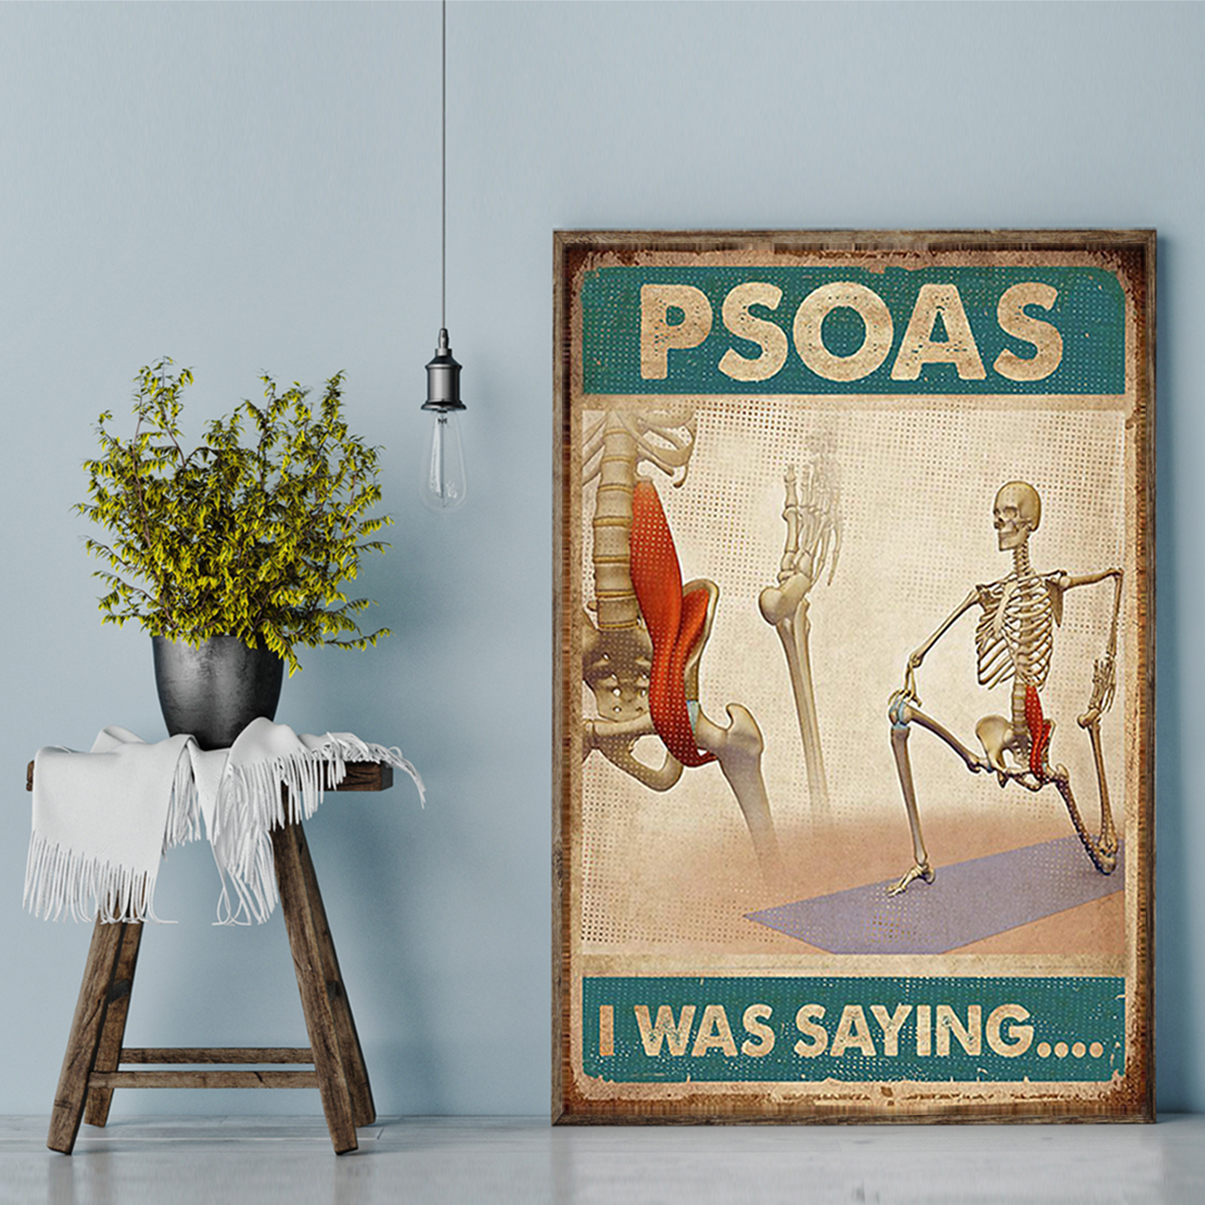 Massage therapist psoas I was saying poster A2